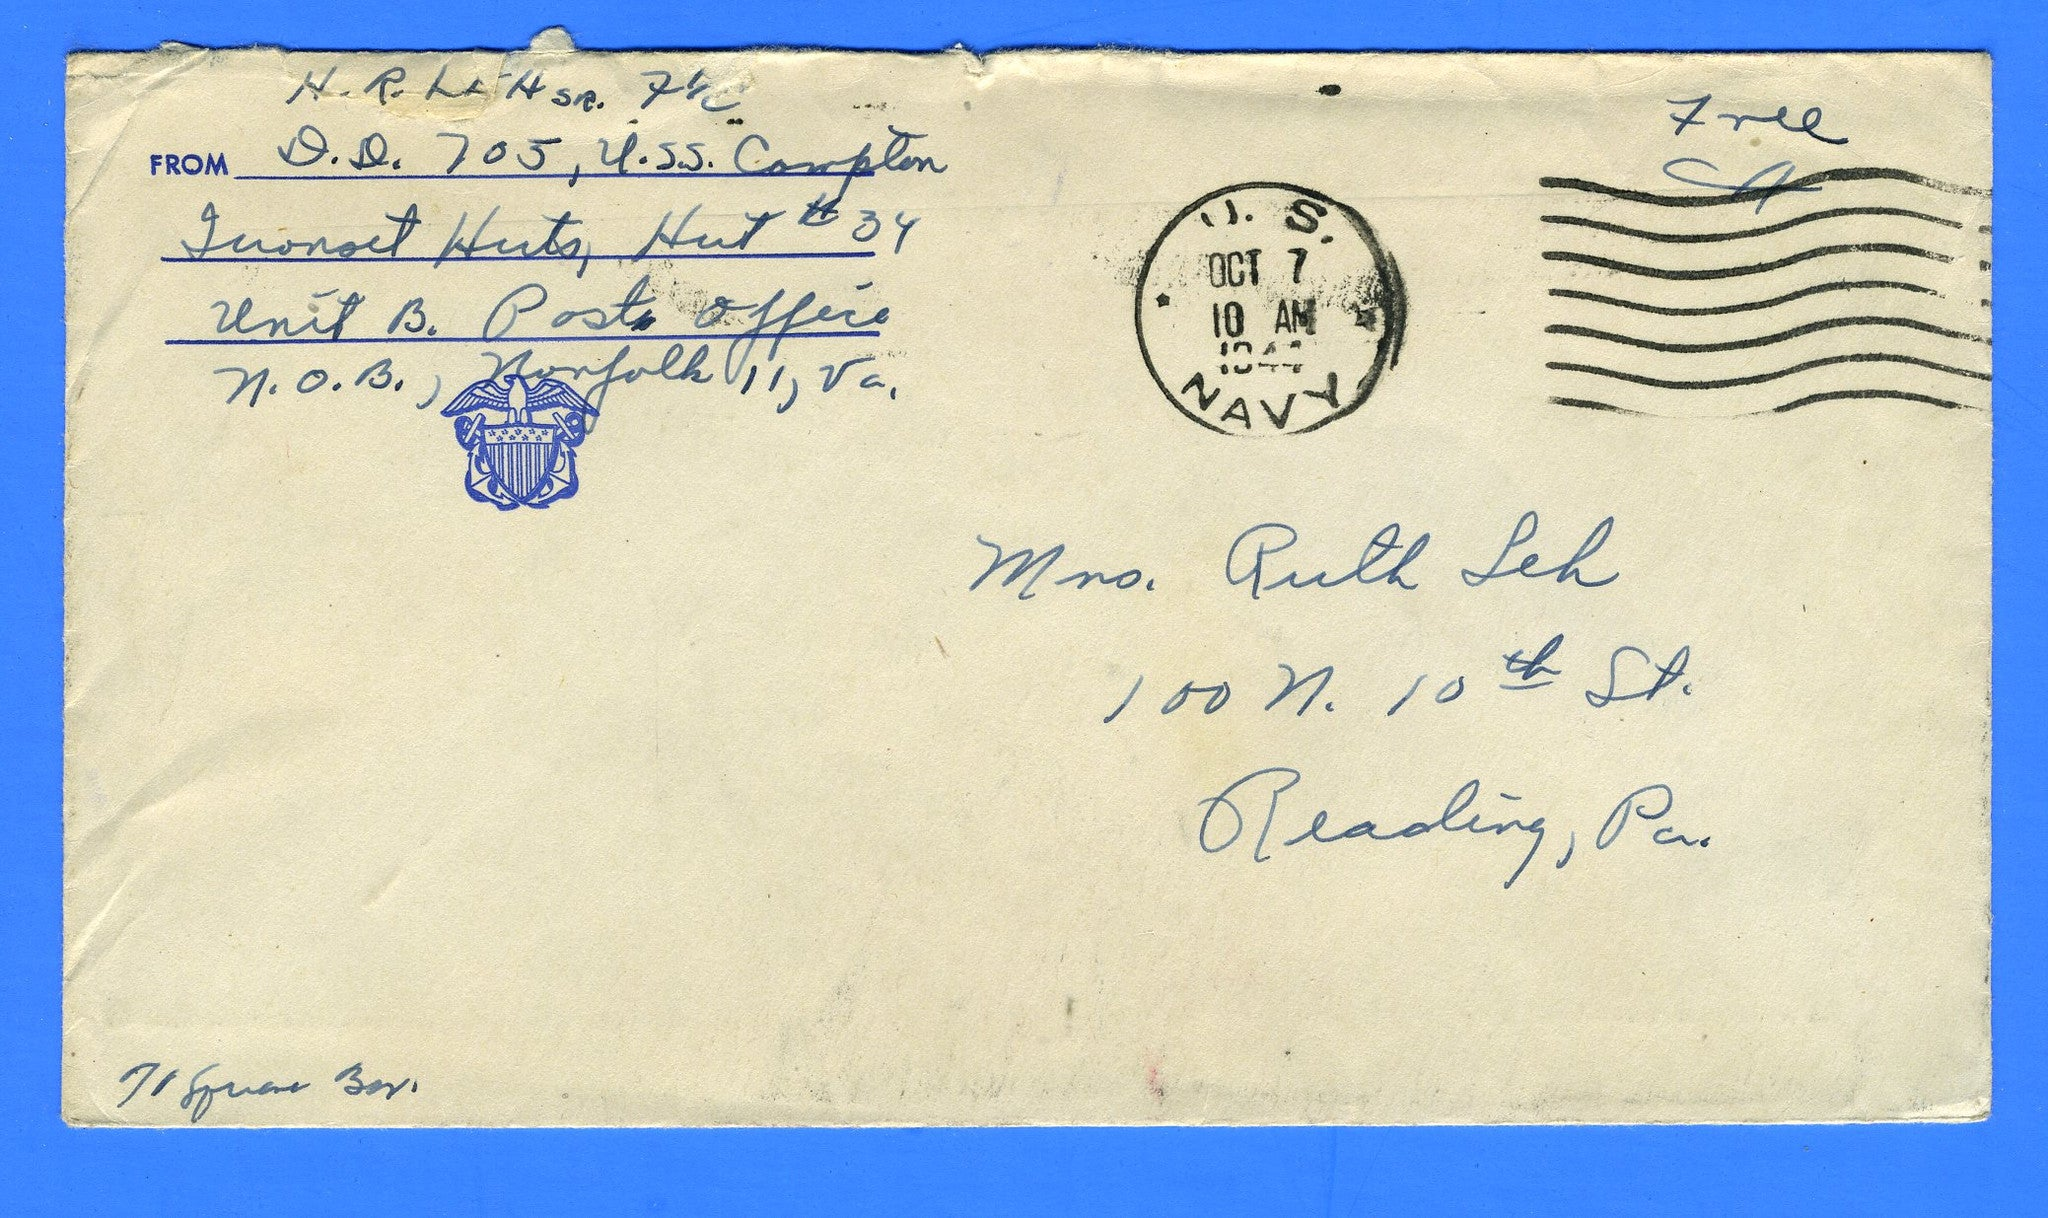 "USS Compton DD-705 Sailor's Censored Mail ""Free"" October 7, 1944 - Prior to Commission on November 4, 1944"